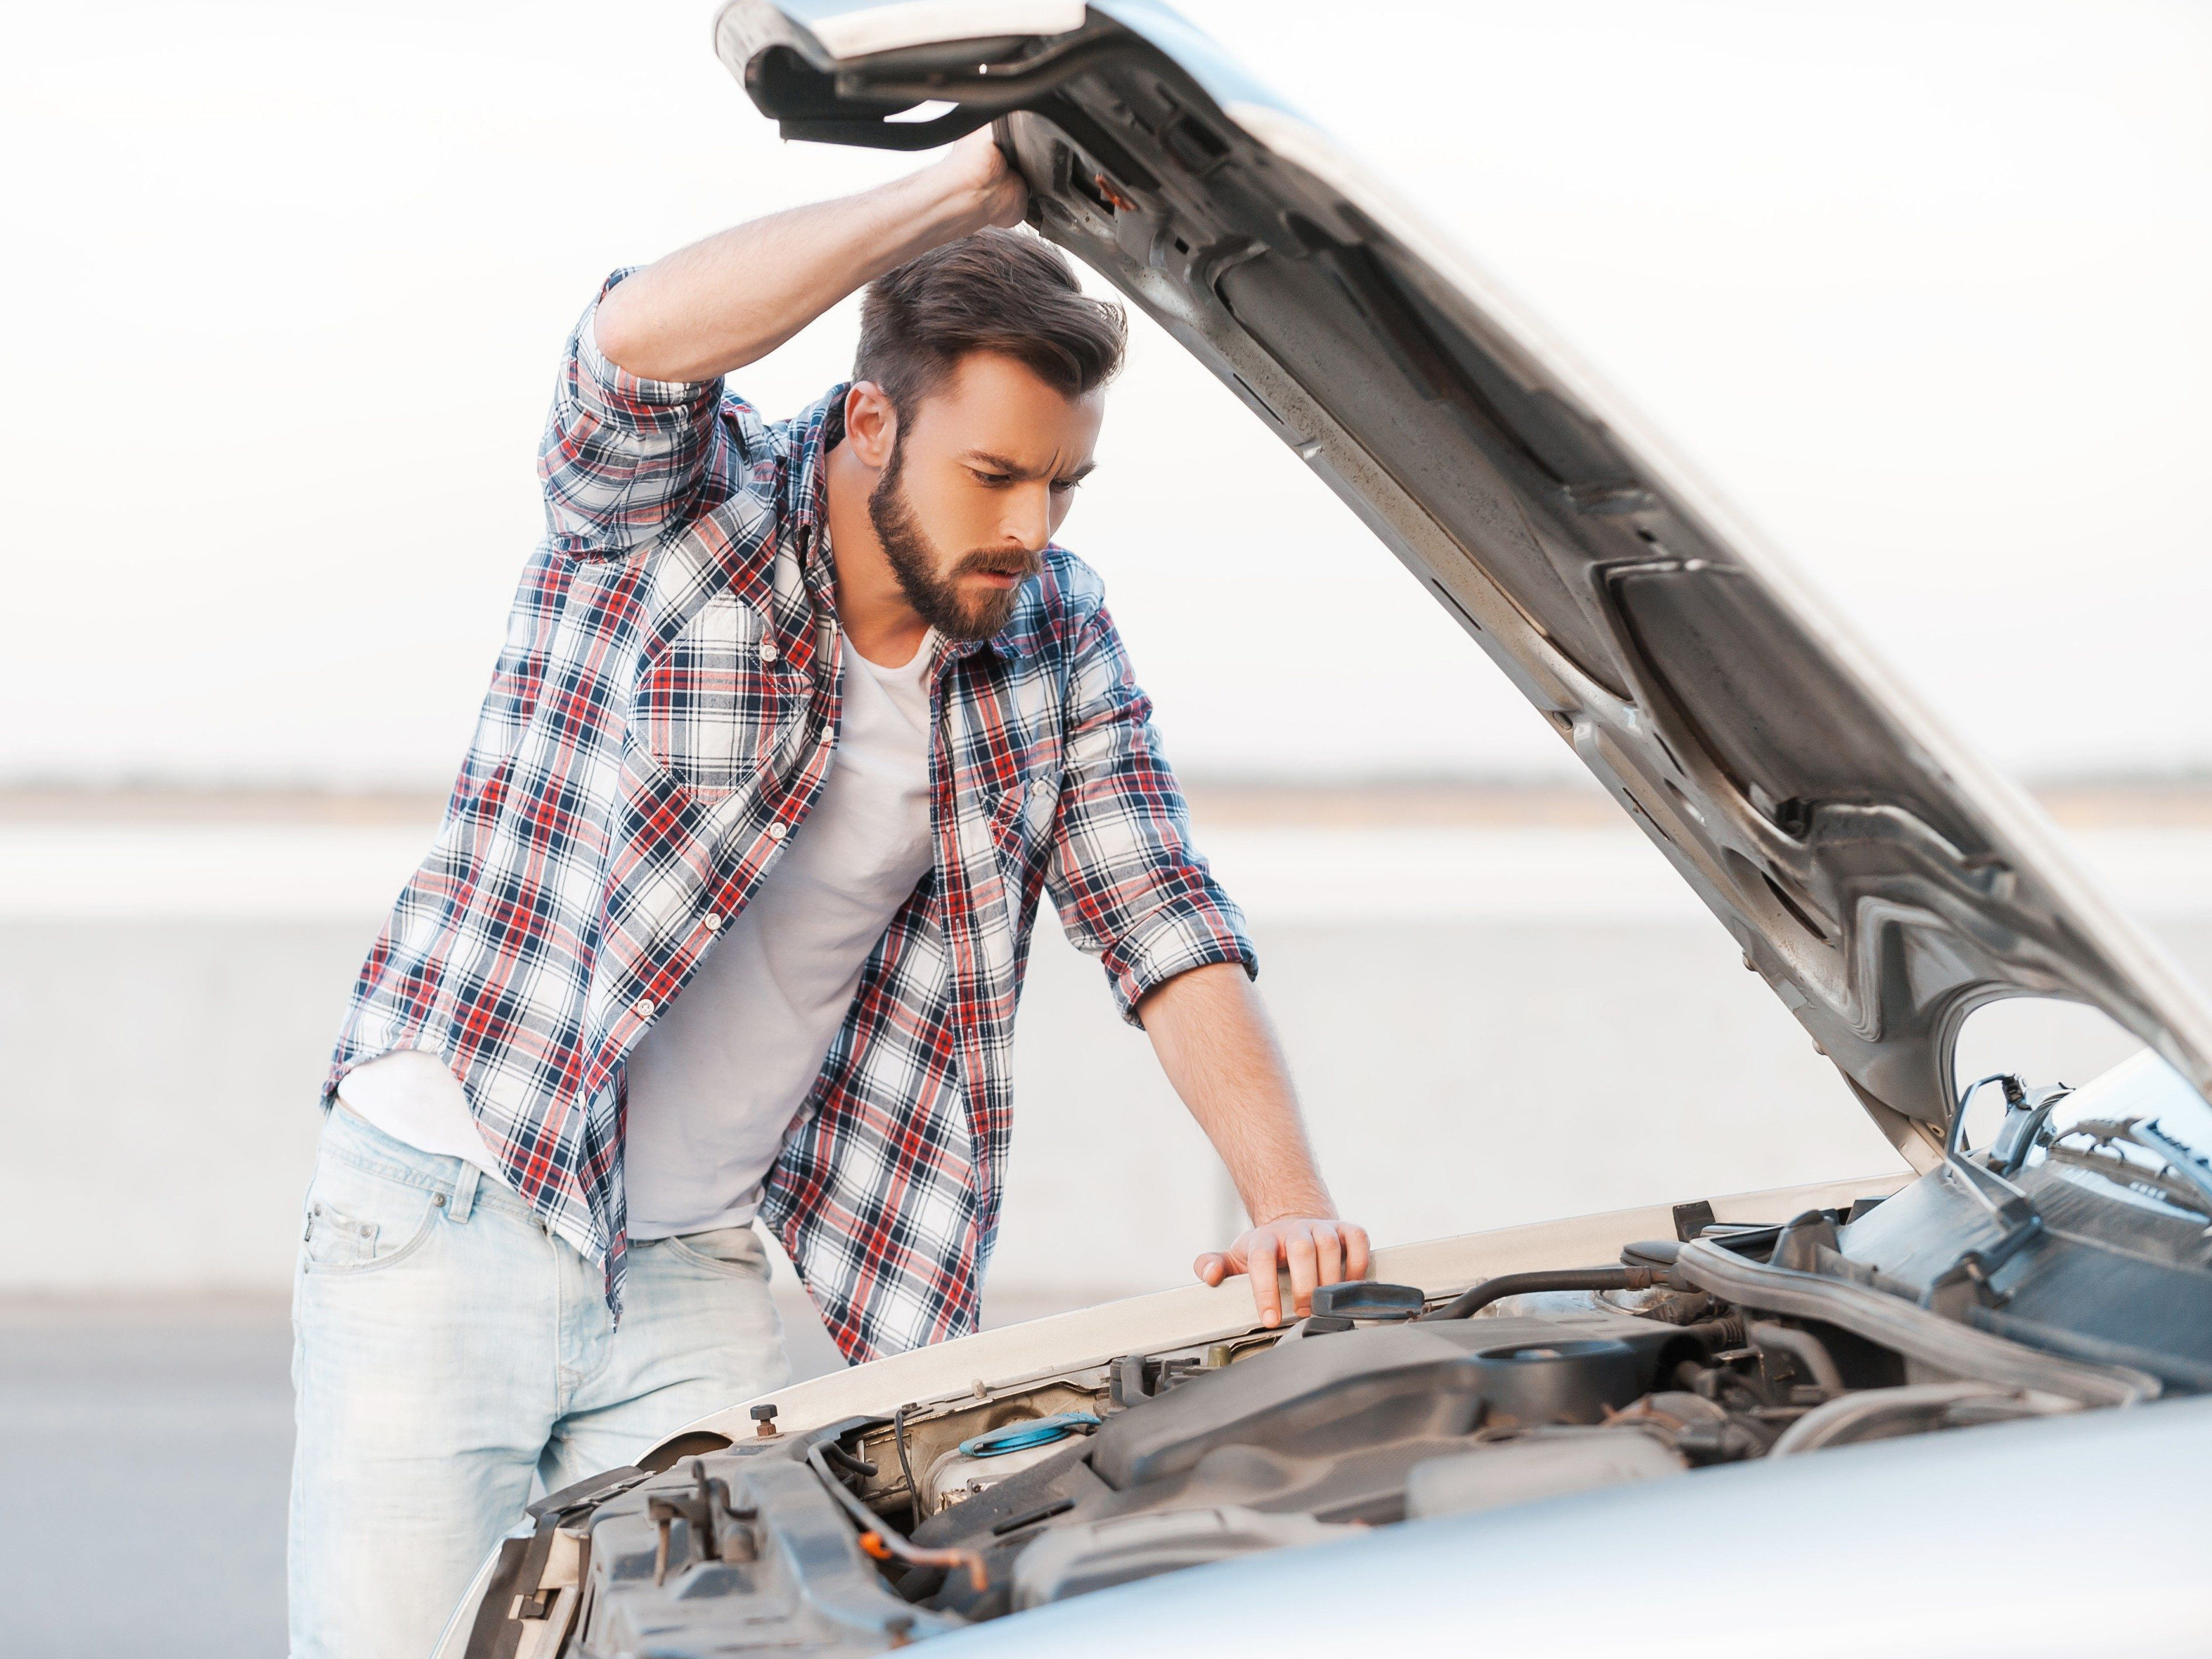 3. Brush Up on Basic Auto Mechanics